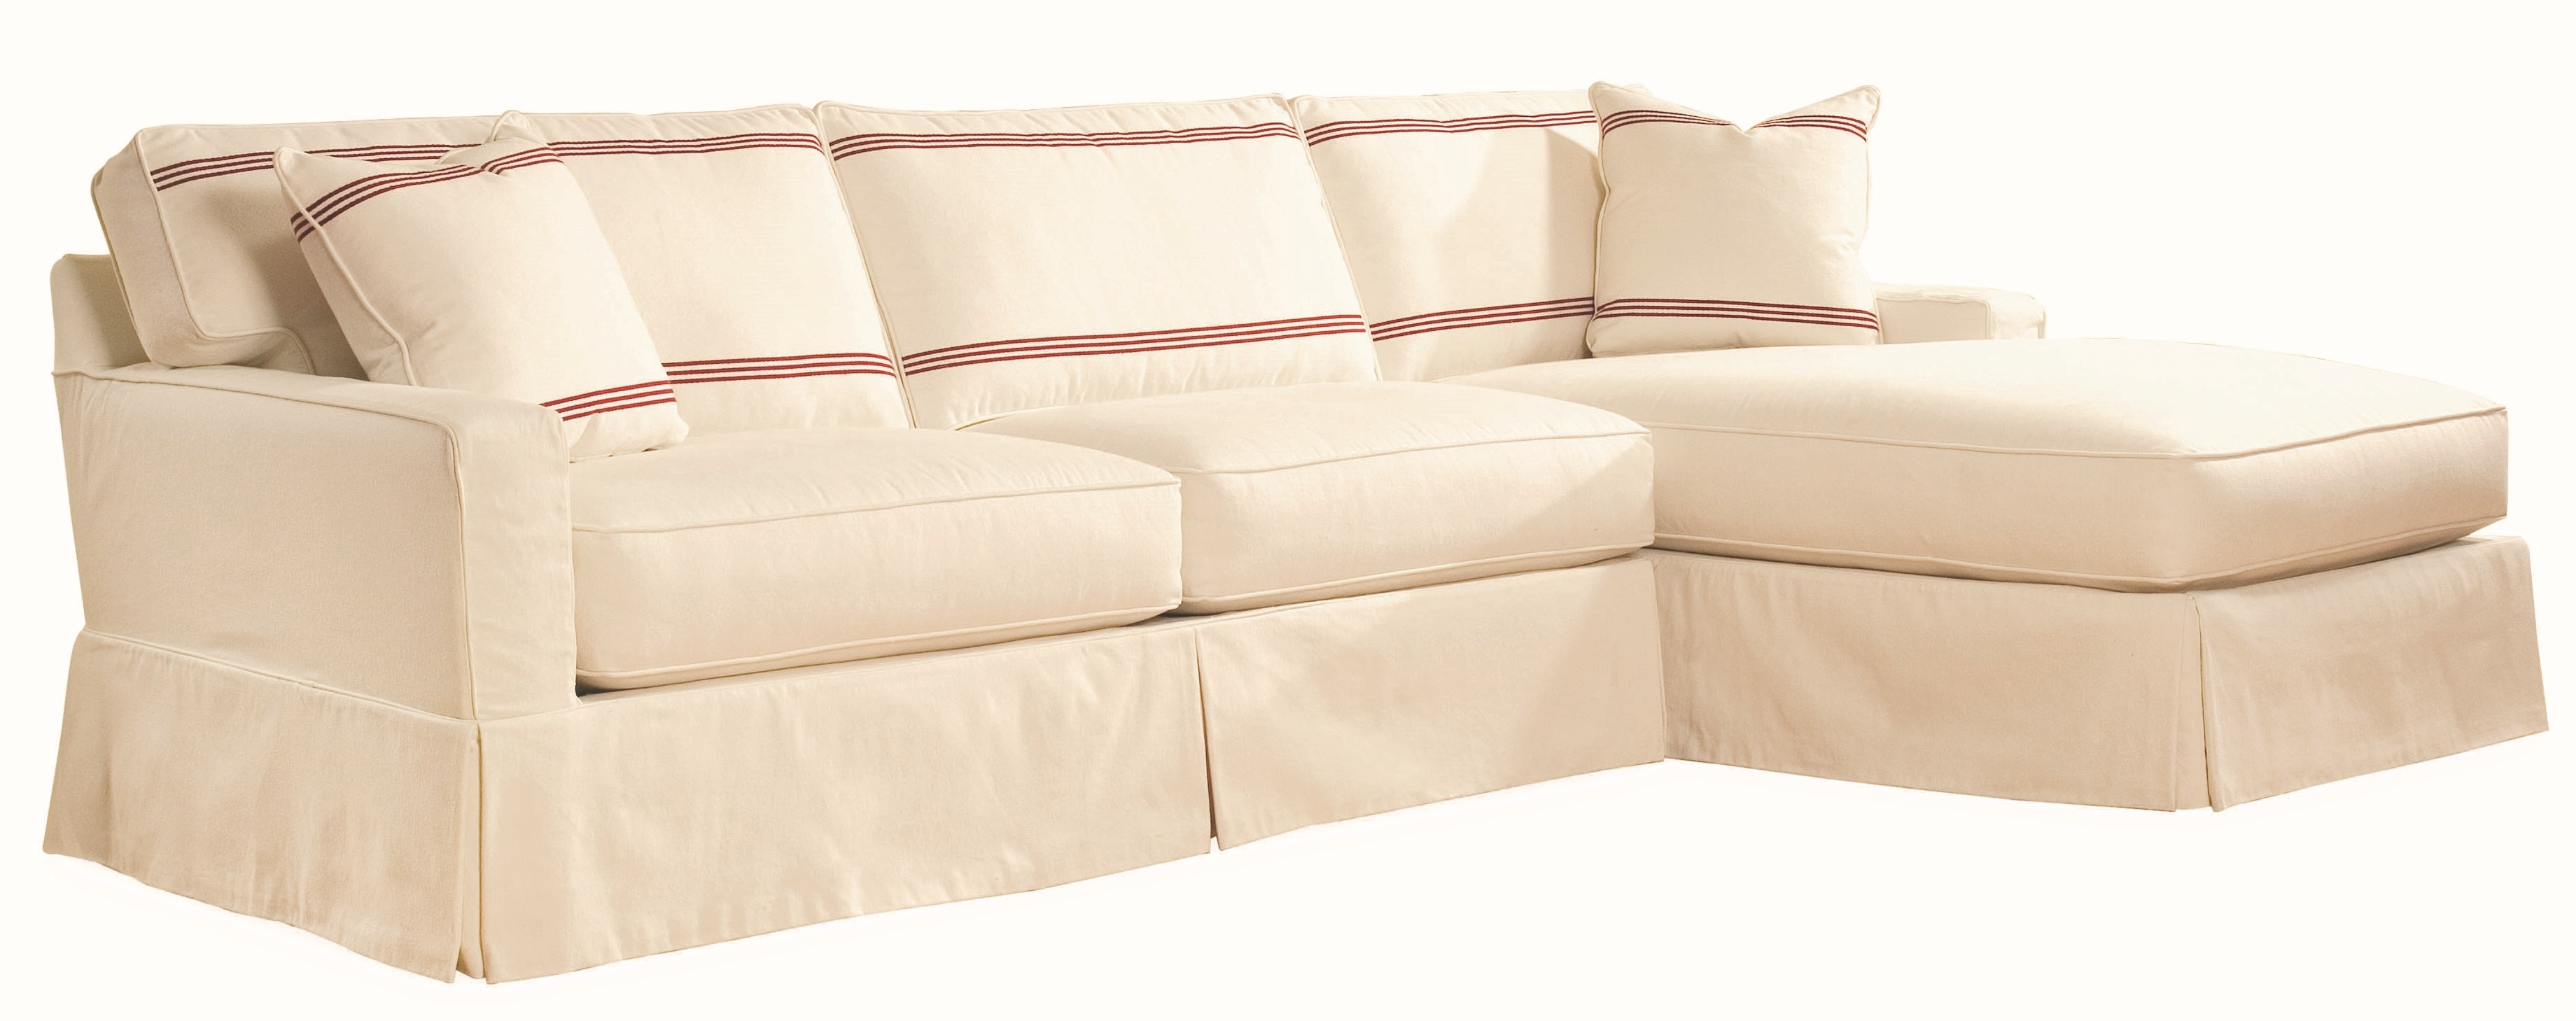 Lee Industries Slipcovered Sectional Series C5287-Series  sc 1 st  Toms-Price : lee industries sectional price - Sectionals, Sofas & Couches